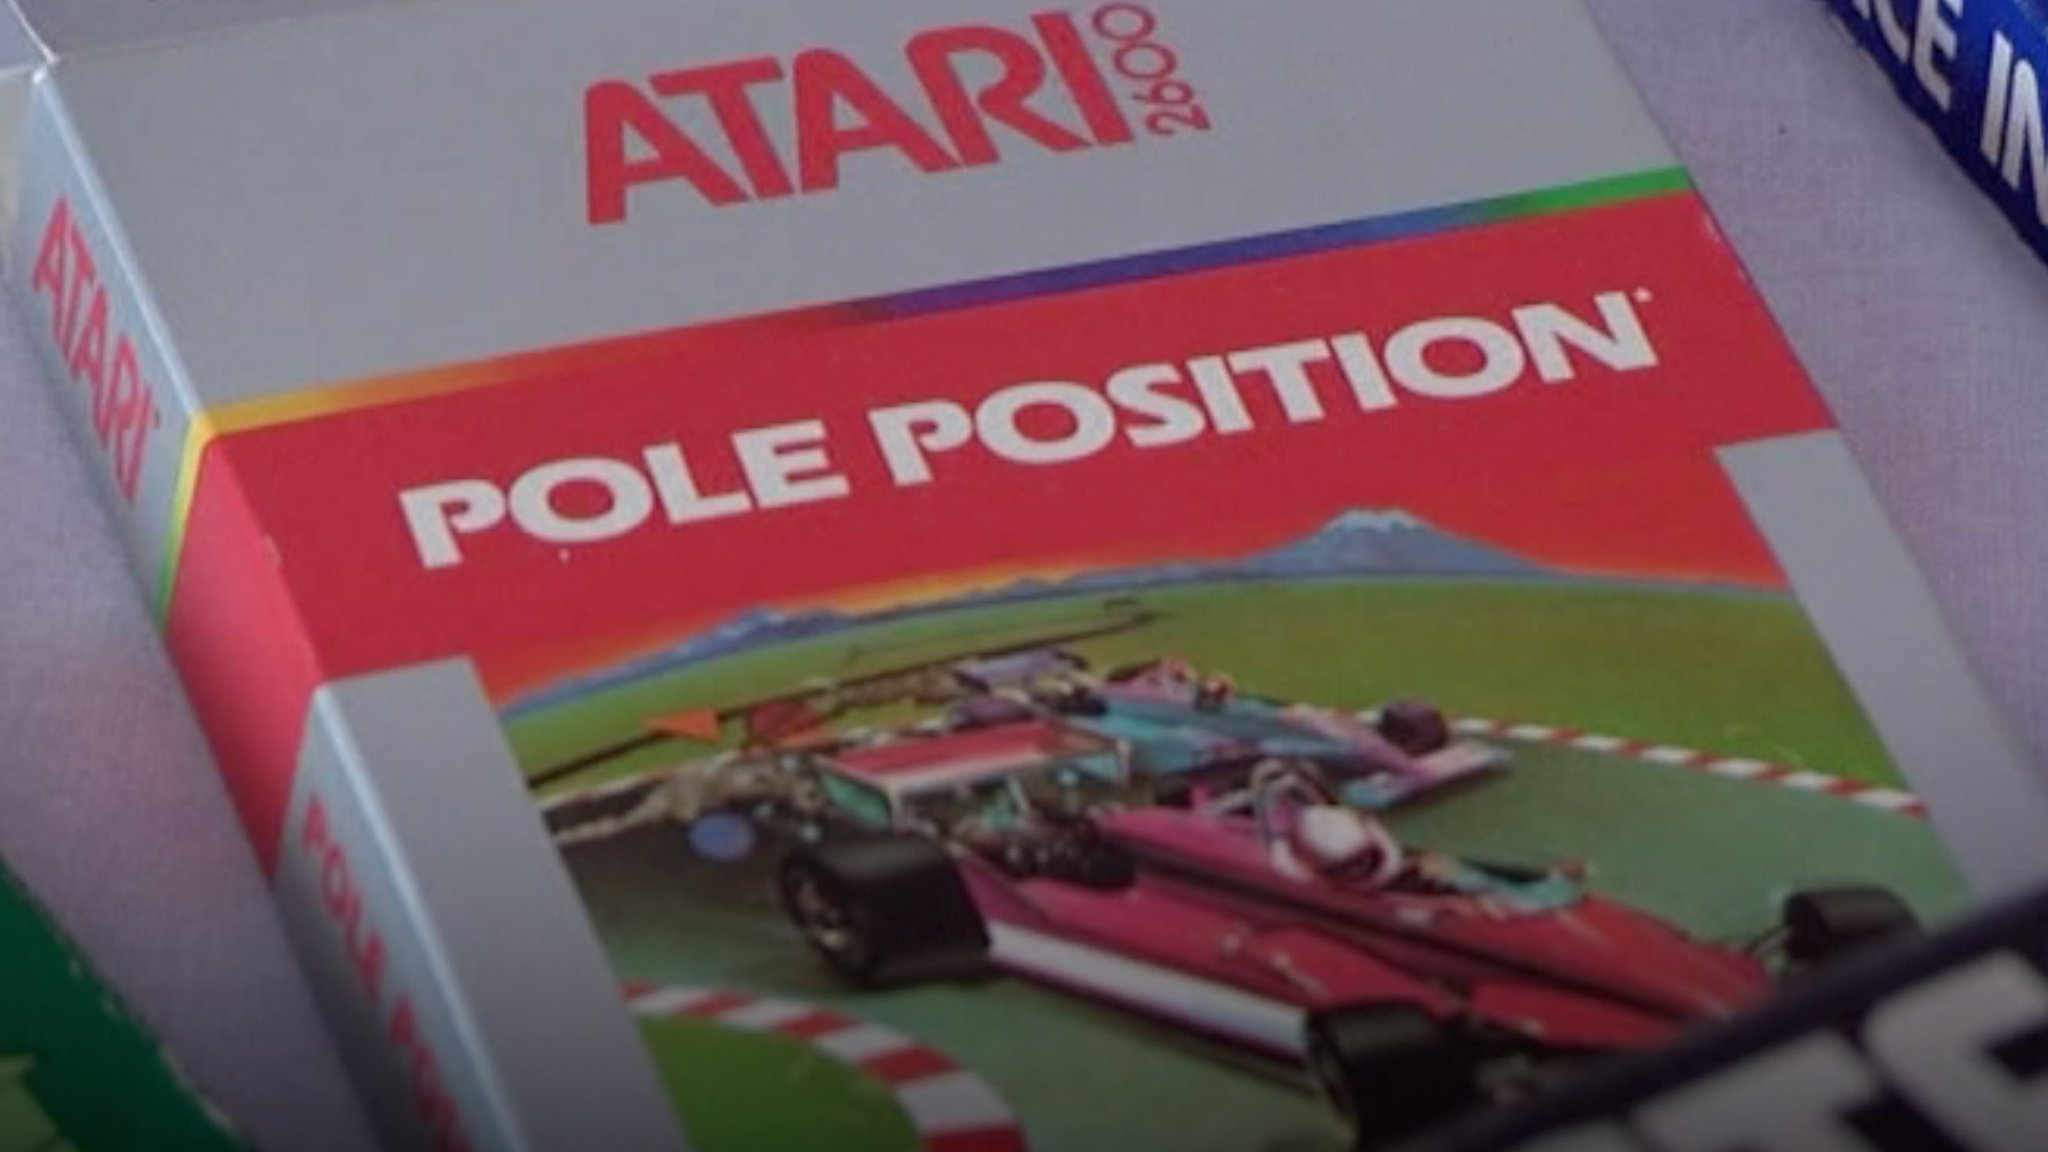 40 years since the launch of the Atari 2600